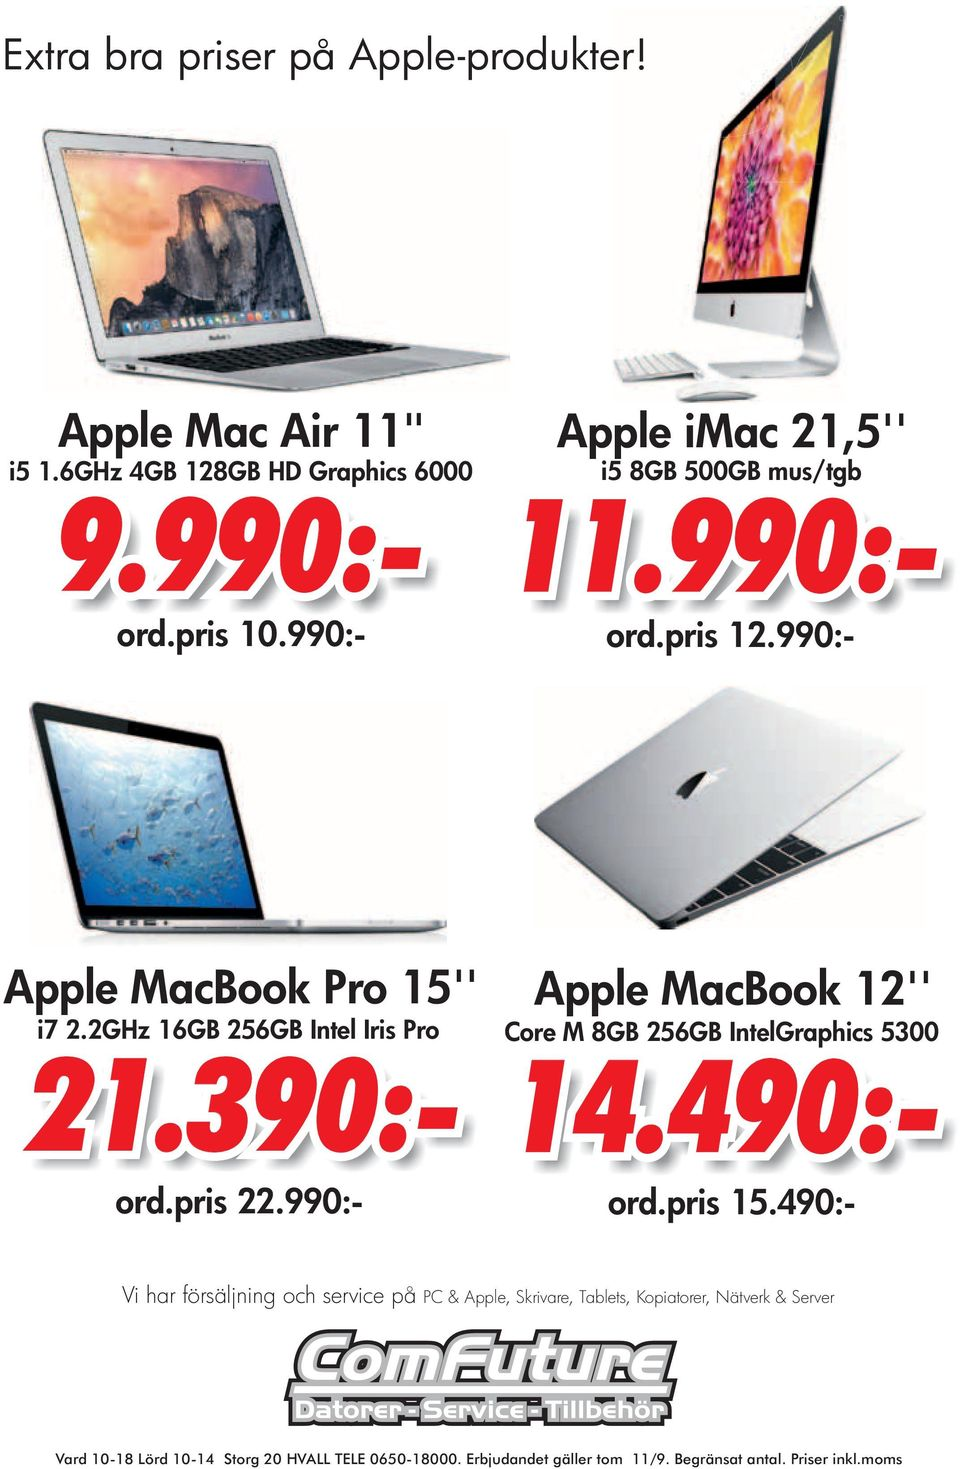 990:- Apple MacBook 12'' Apple Mac 21,5'' 5 8GB 500GB mus/tgb 11.990:- ord.prs 12.990:- Core M 8GB 256GB IntelGraphcs 5300 14.490:- ord.